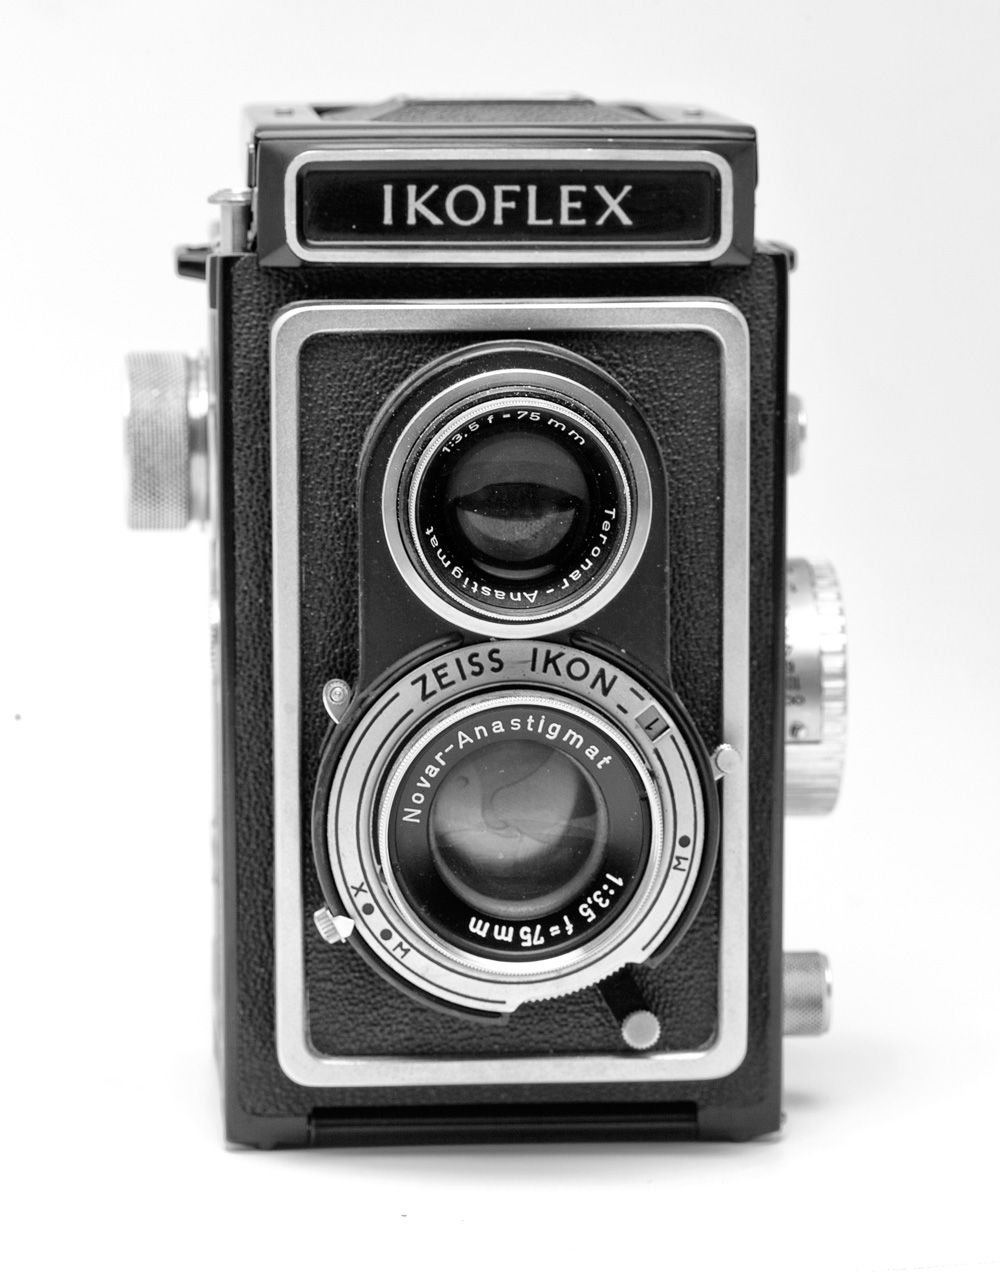 Kodak-Vintage-Camera-Antique-Camera-Photographer-Joakim ...